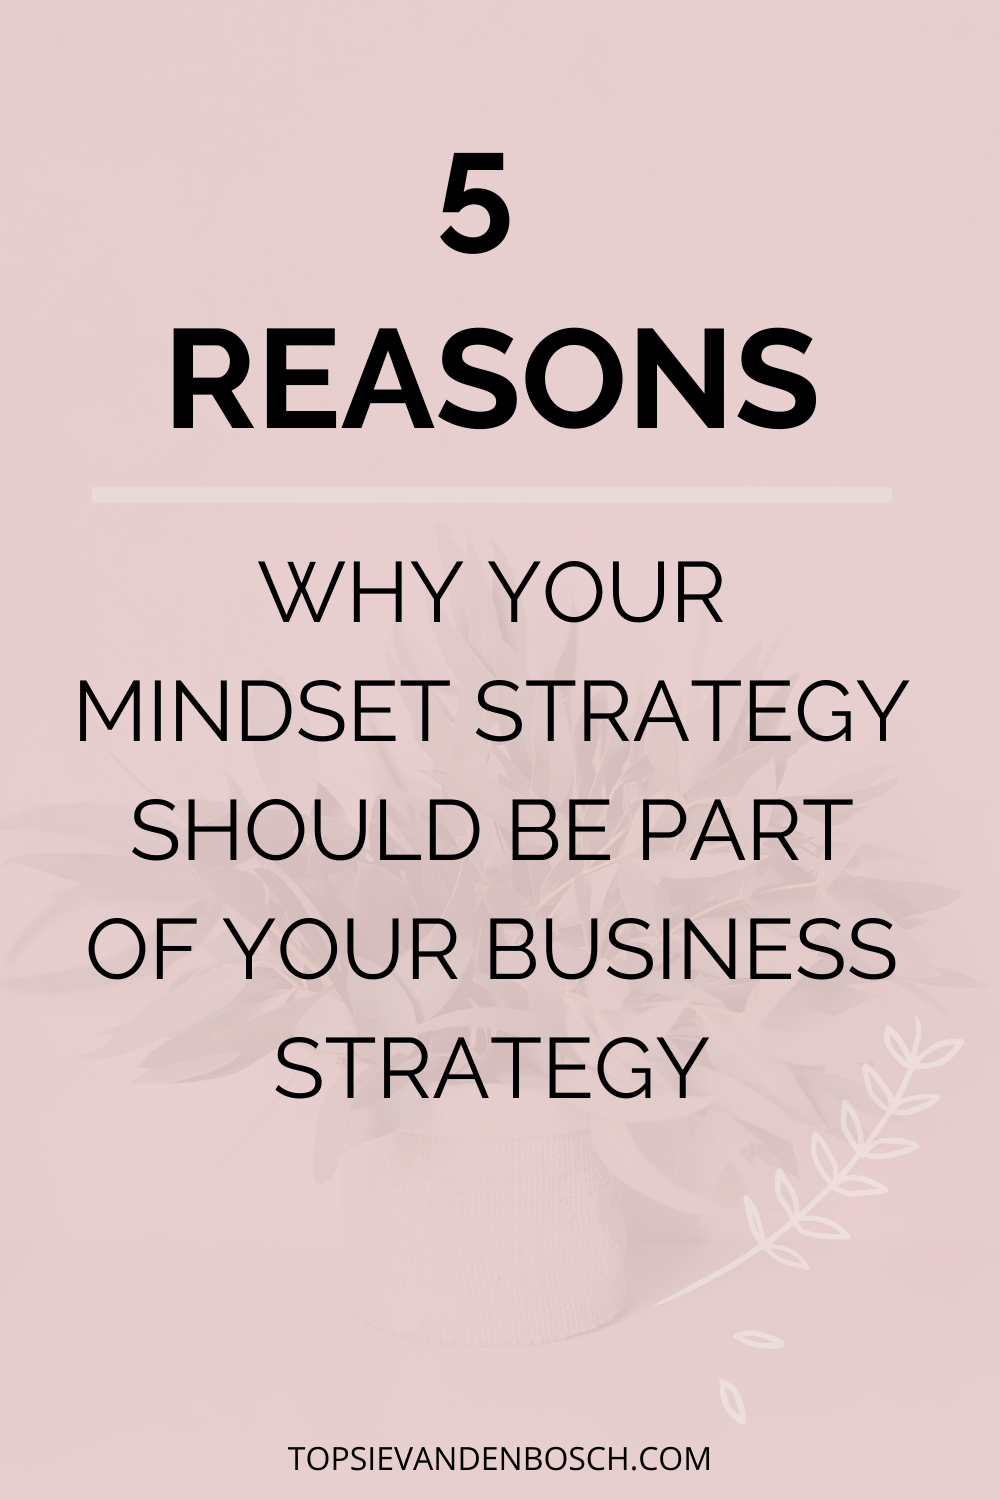 Mindset is really important when running and growing your own business. Check out these 5 reasons why your mindset strategy should be part of your business strategy. | Mindset Strategy | Personal Development | How To Grow Your Business | #mindset